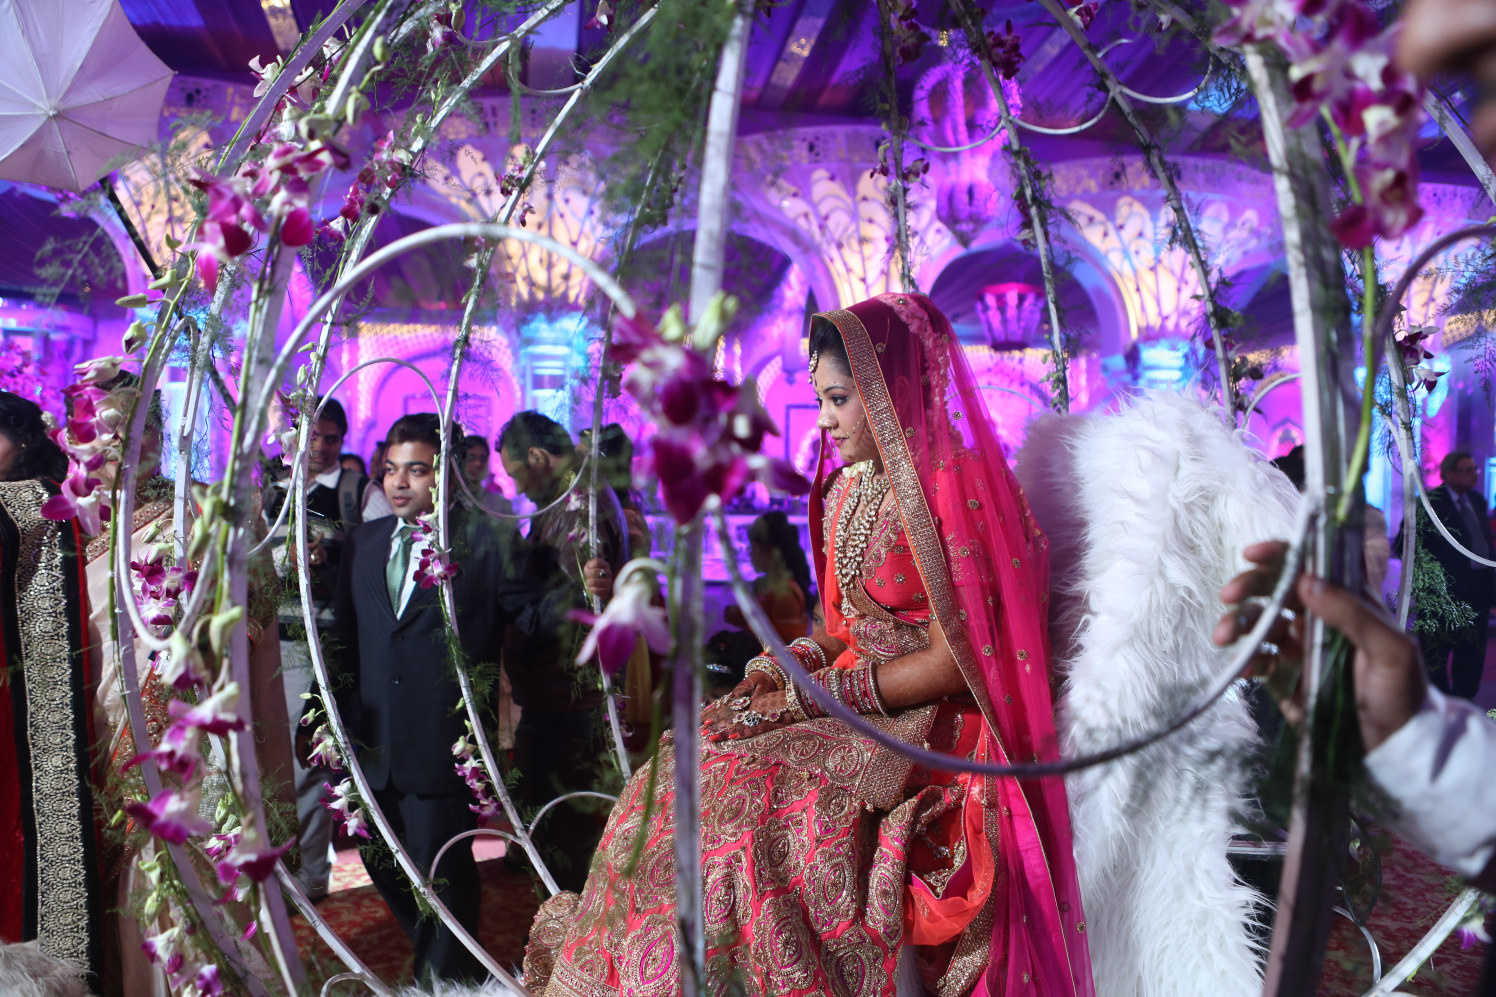 Spectacularly Magnificent Entry of the Bride by Amit Kumar Wedding-photography | Weddings Photos & Ideas